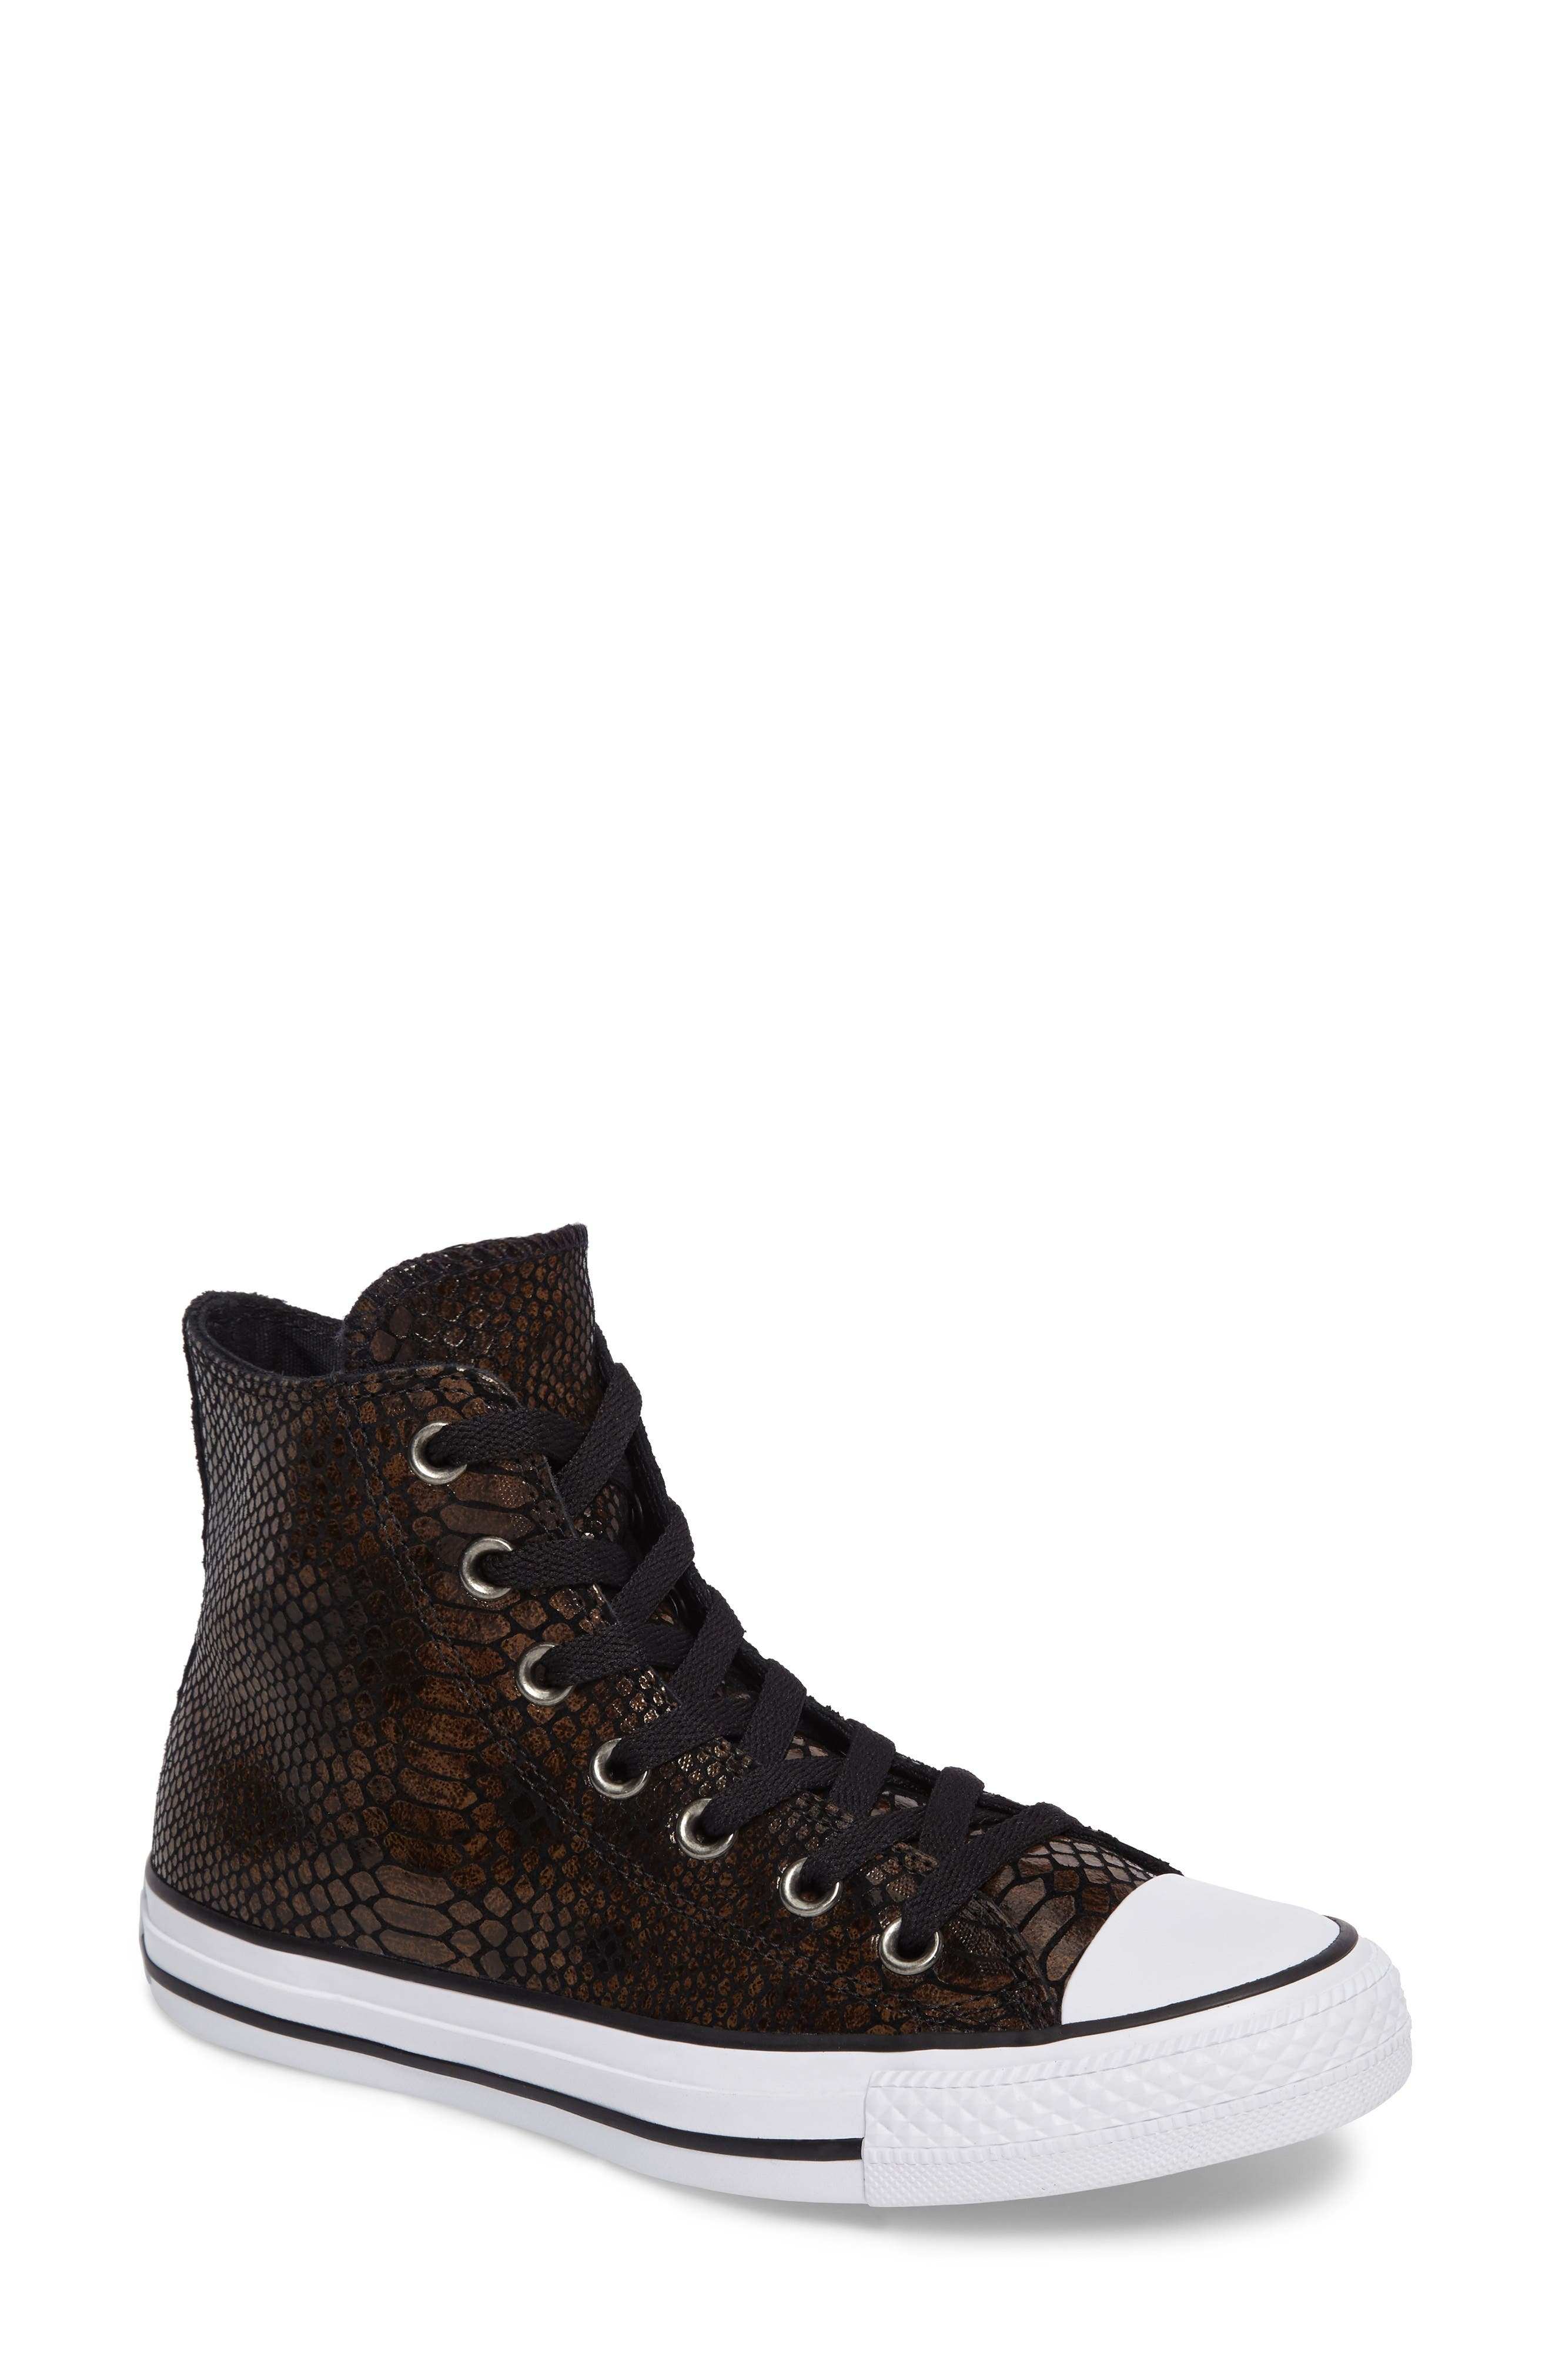 Alternate Image 1 Selected - Converse Chuck Taylor® All Star® Snake Embossed High Top Sneaker (Women)